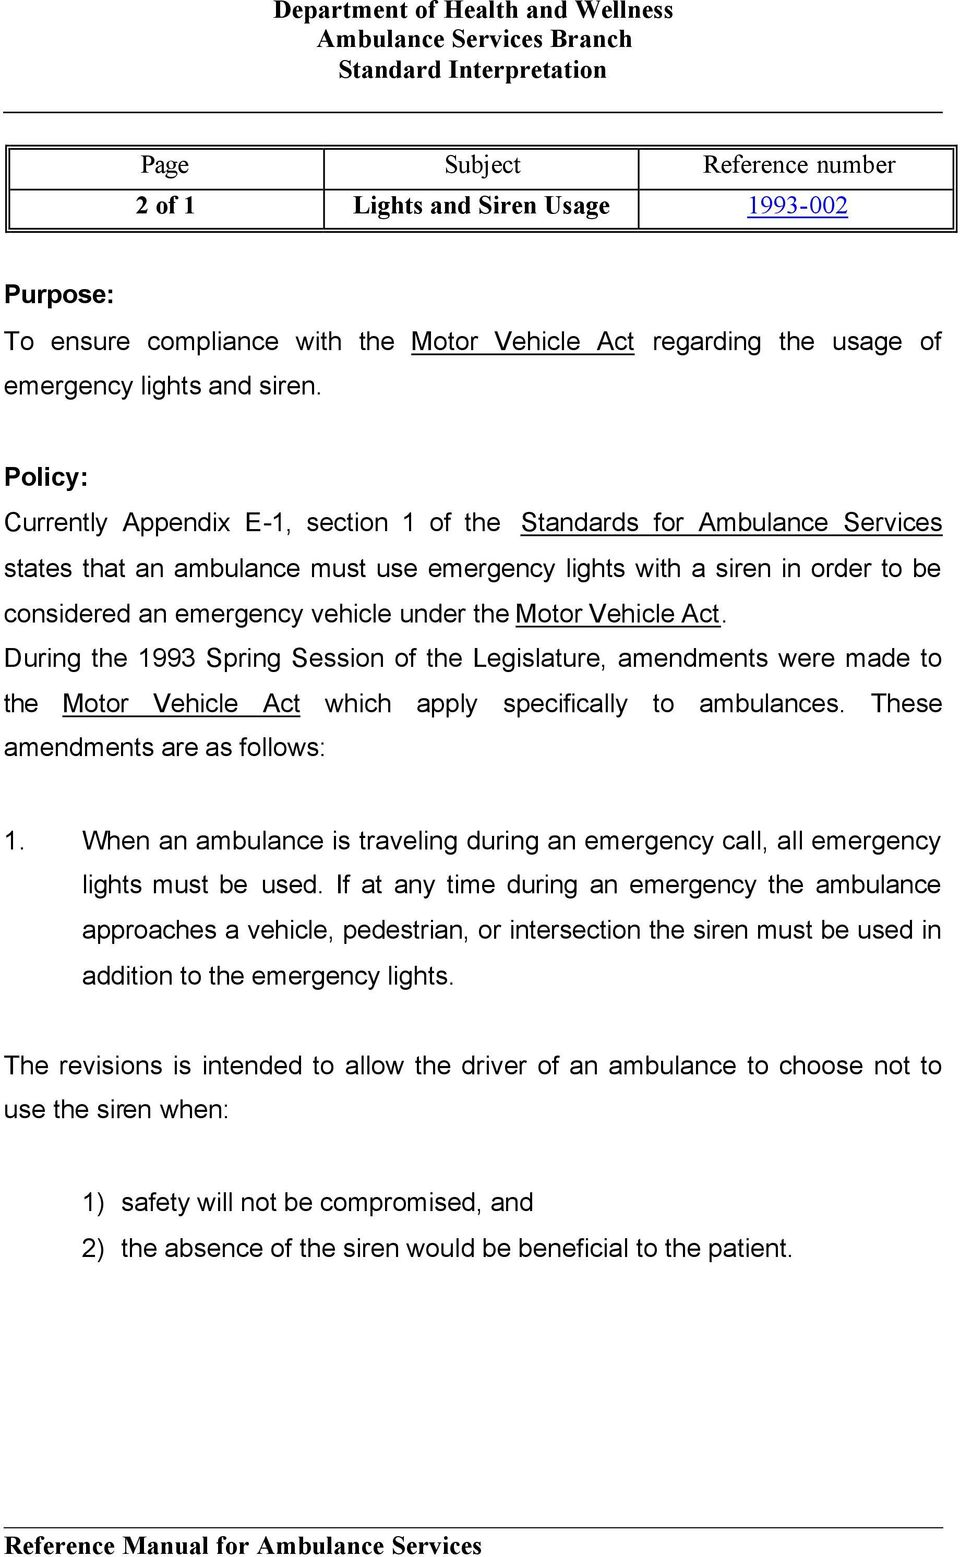 Motor Vehicle Act. During the 1993 Spring Session of the Legislature, amendments were made to the Motor Vehicle Act which apply specifically to ambulances. These amendments are as follows: 1.